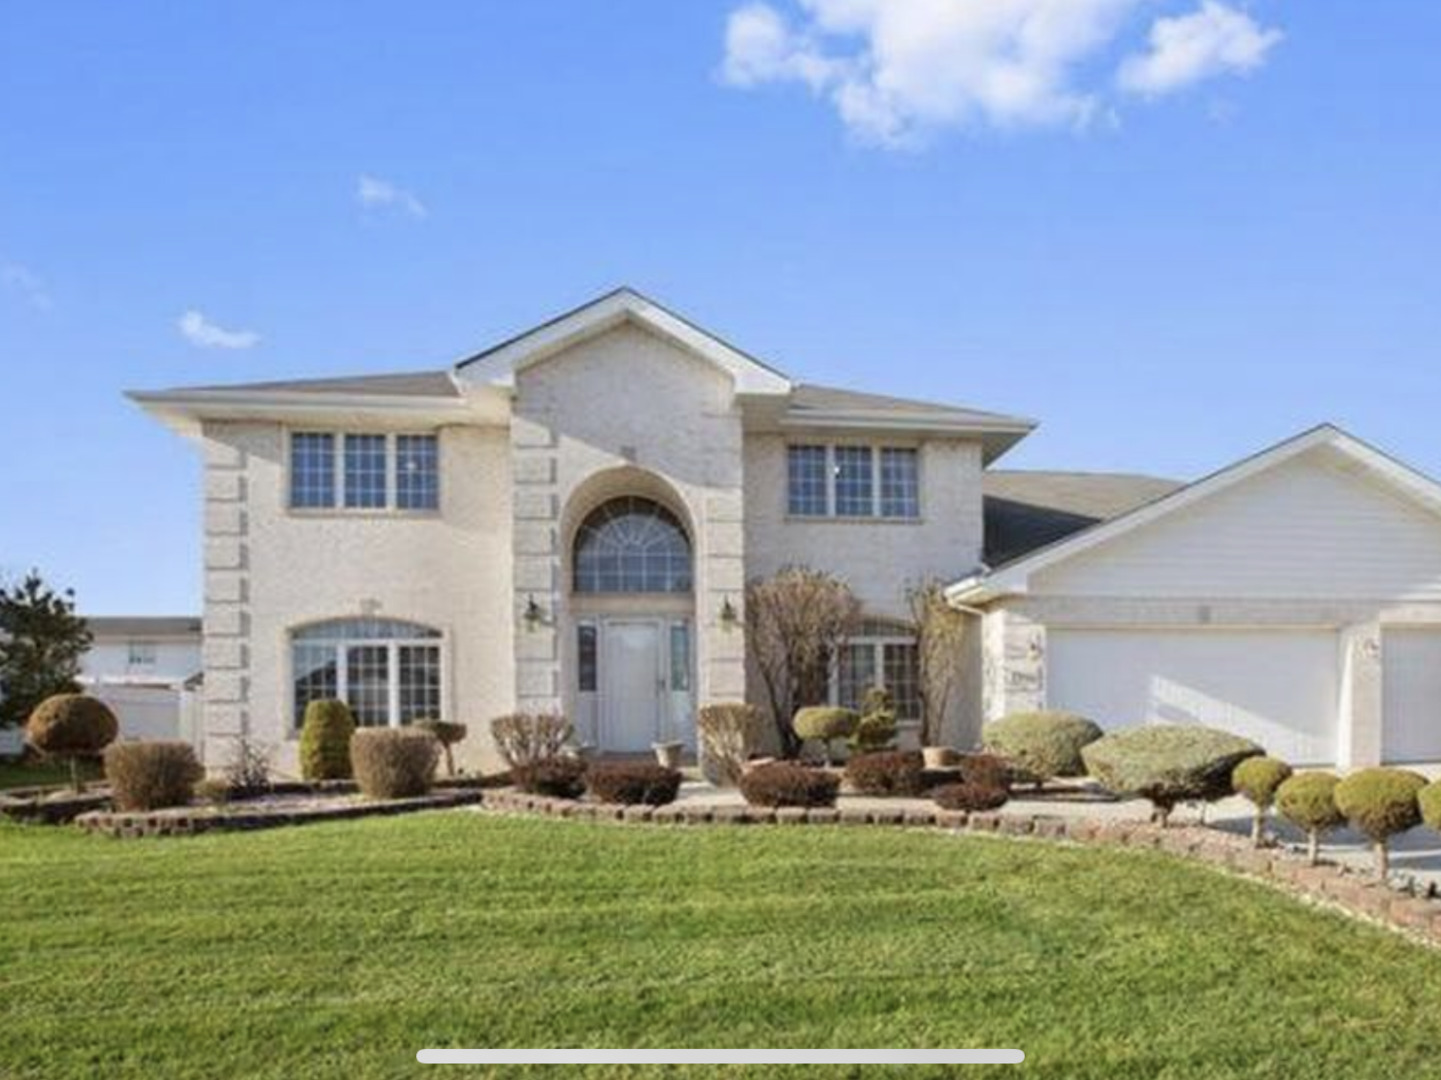 9036 Basswood Drive, Tinley Park in Will County, IL 60487 Home for Sale